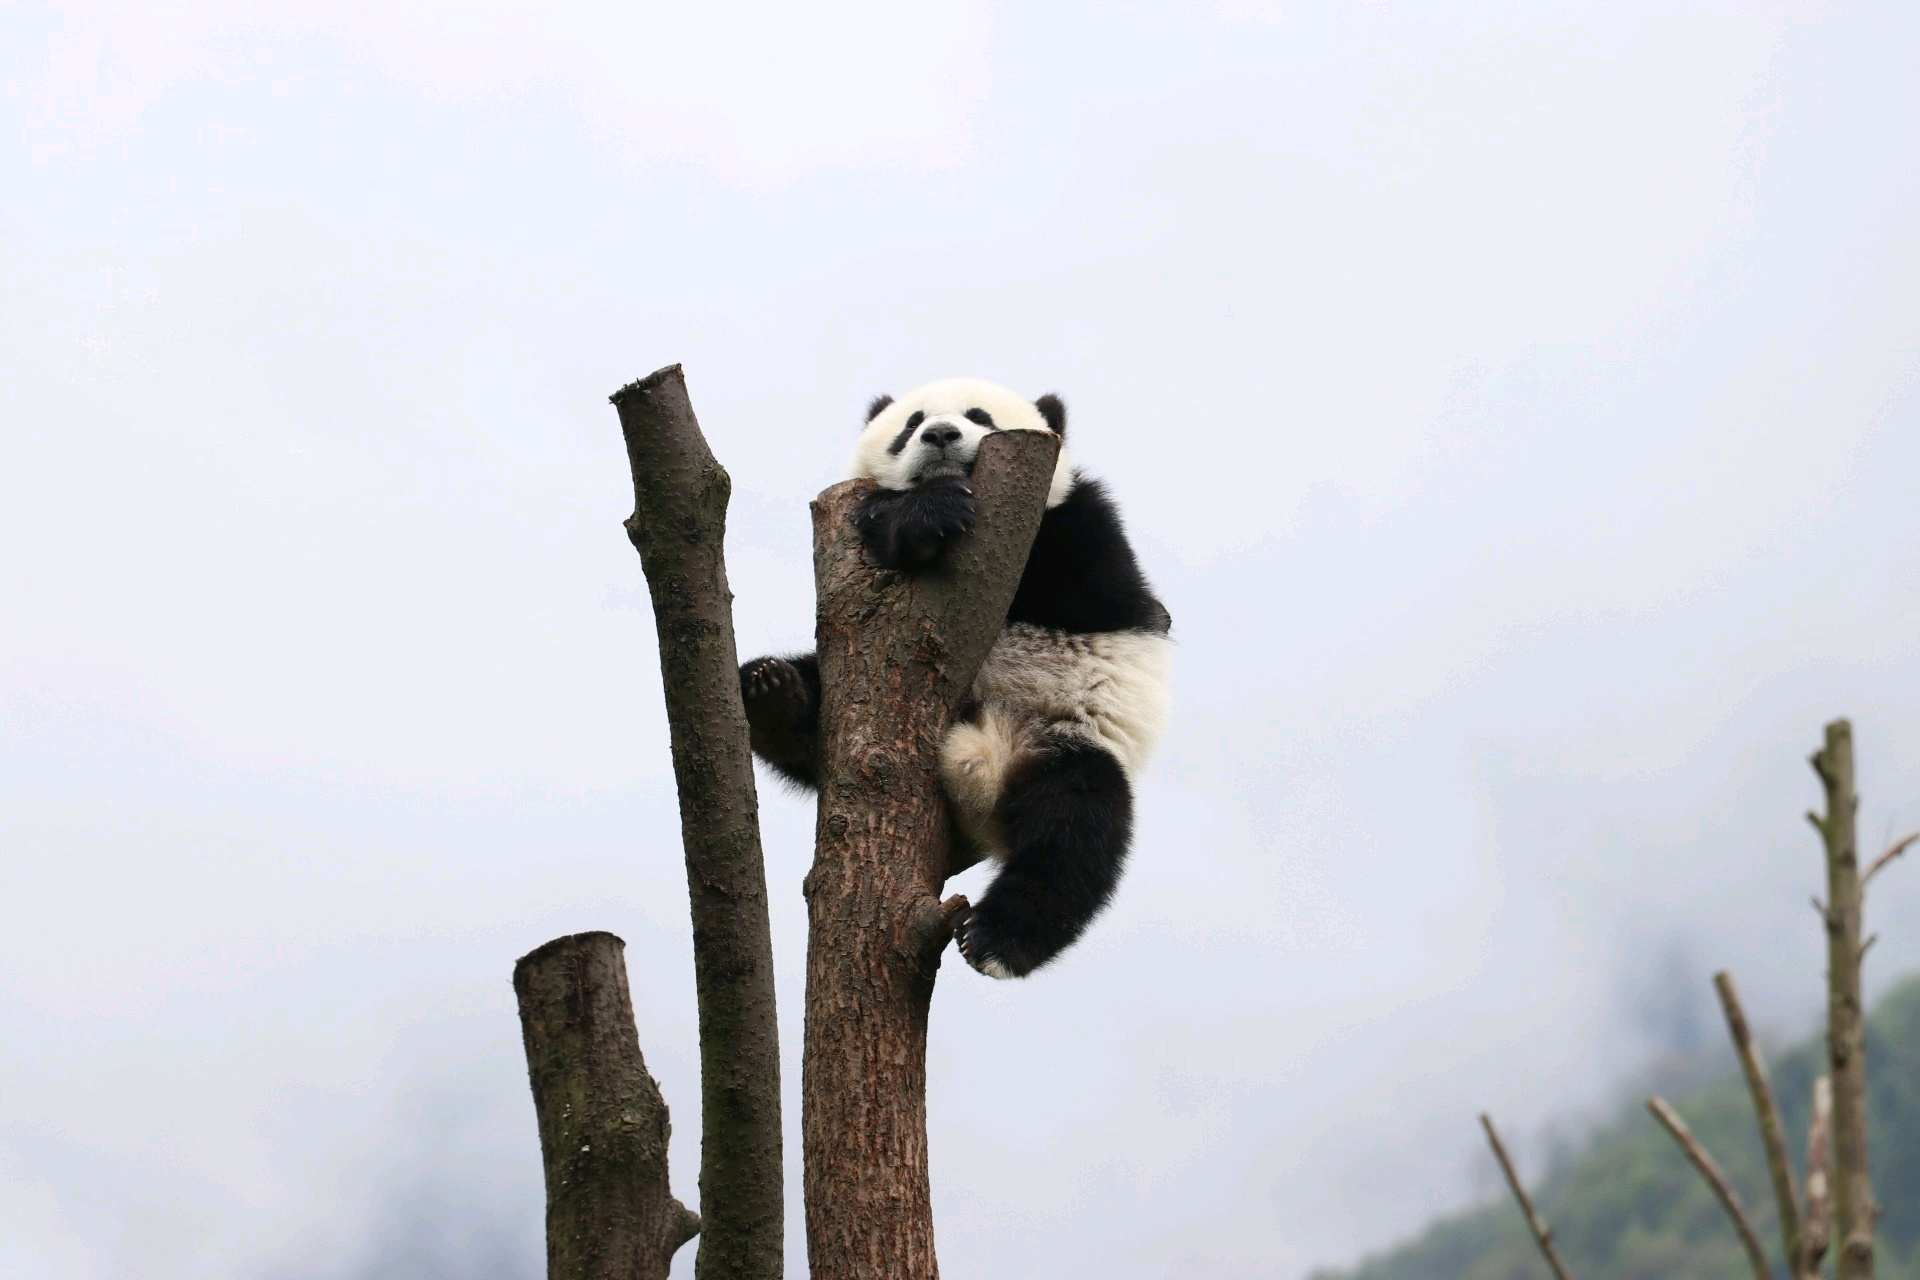 Wolong panda center